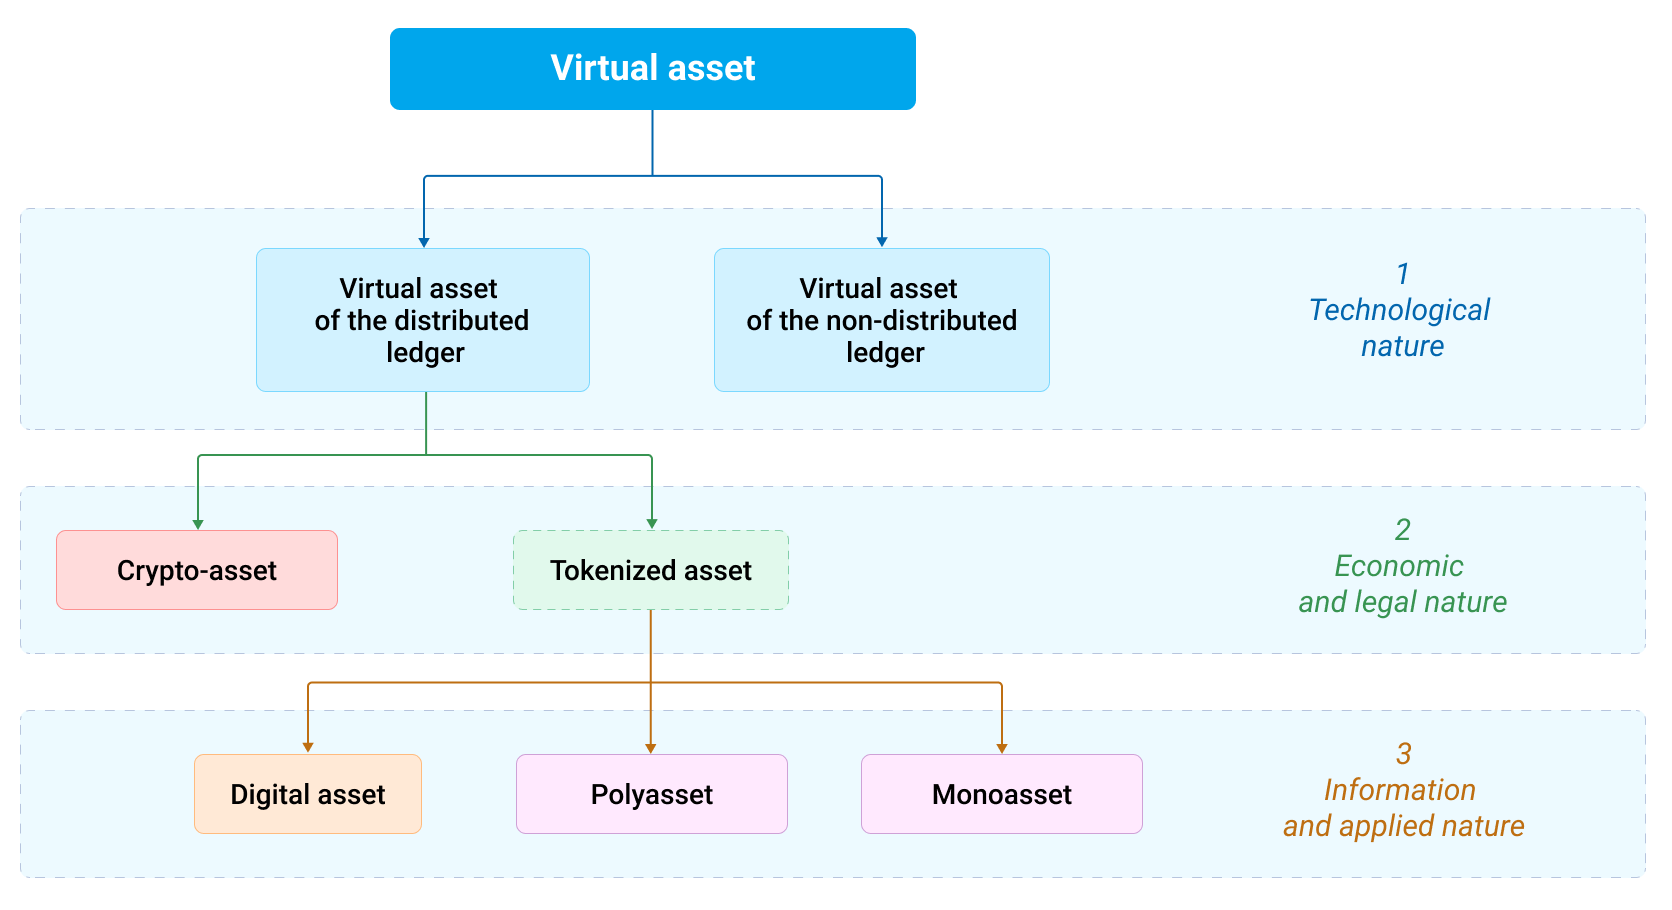 Visual representation of the classification of virtual assets based on the complexity of their nature